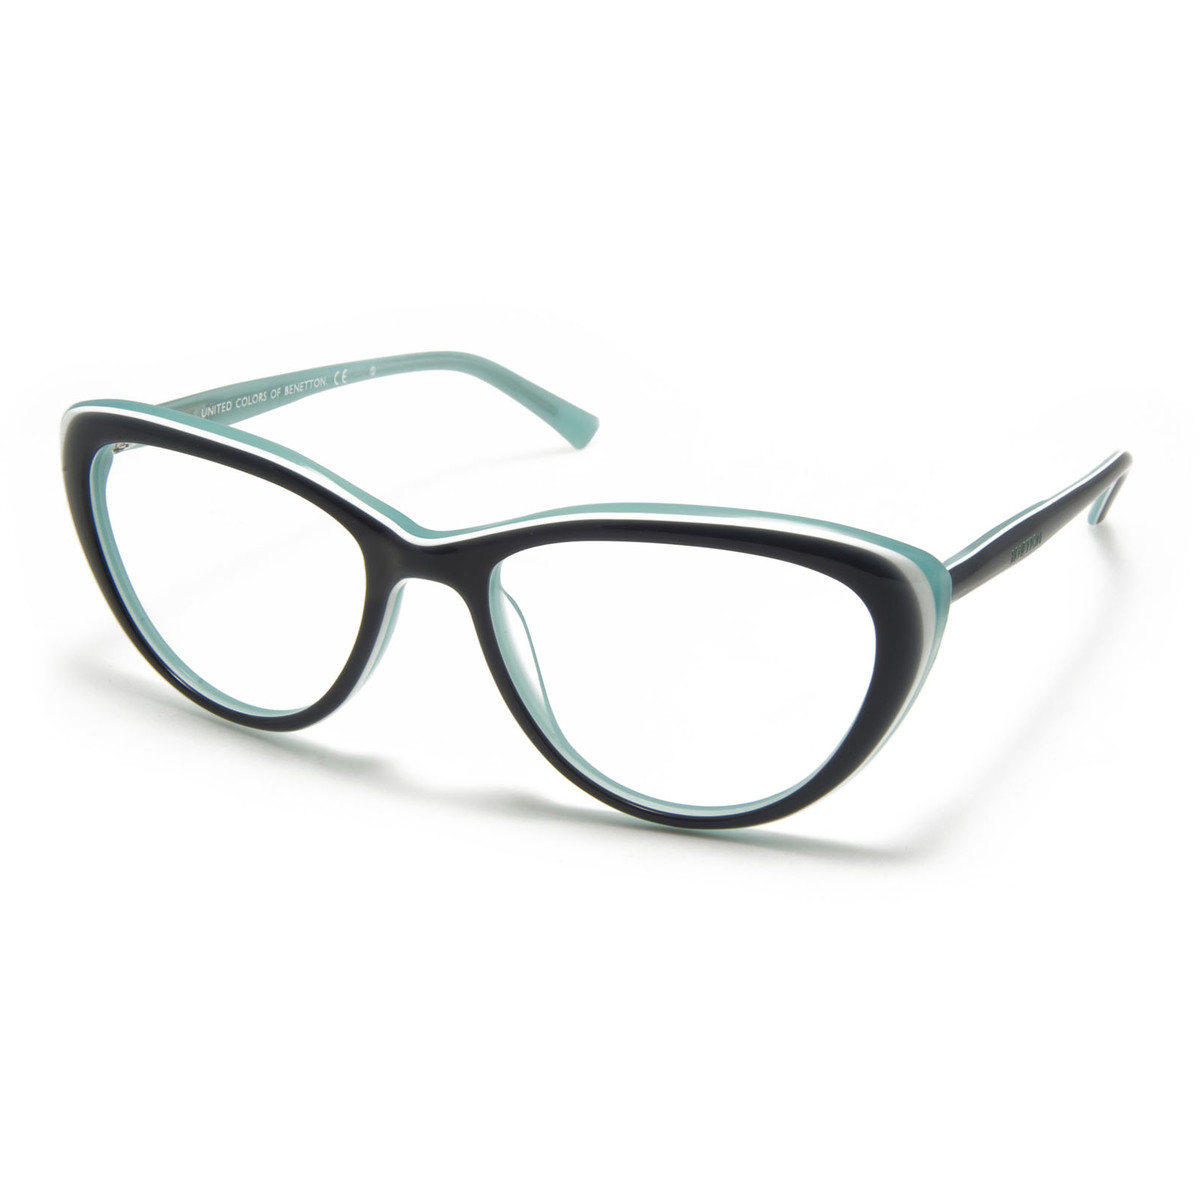 Rame ochelari vedere dama UNITED COLORS OF BENETTON BN334V02 blue de la United Colors of Benetton